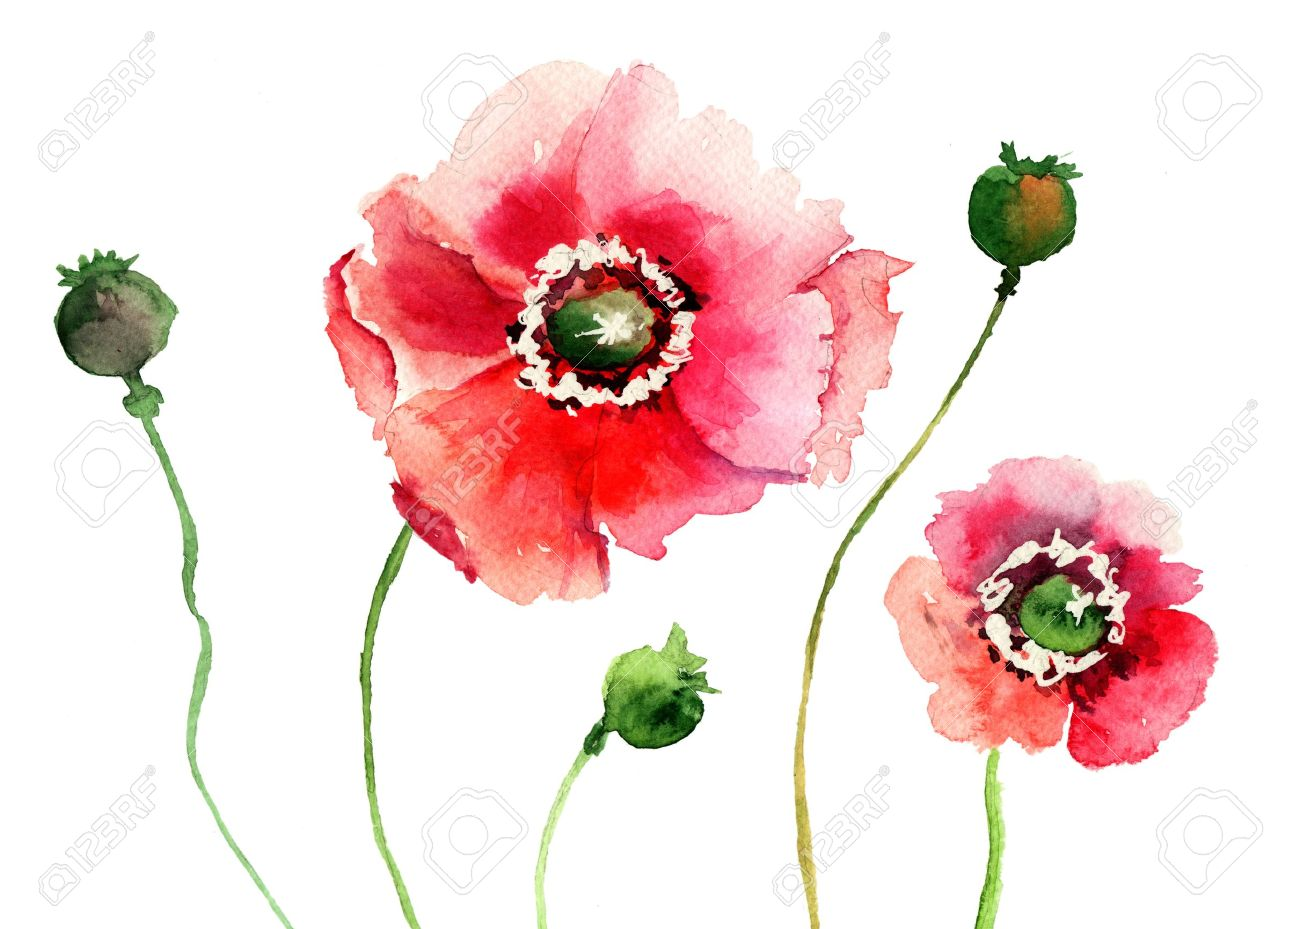 Stylized Poppy Flowers Illustration Stock Photo  Picture And Royalty     Illustration   Stylized Poppy flowers illustration